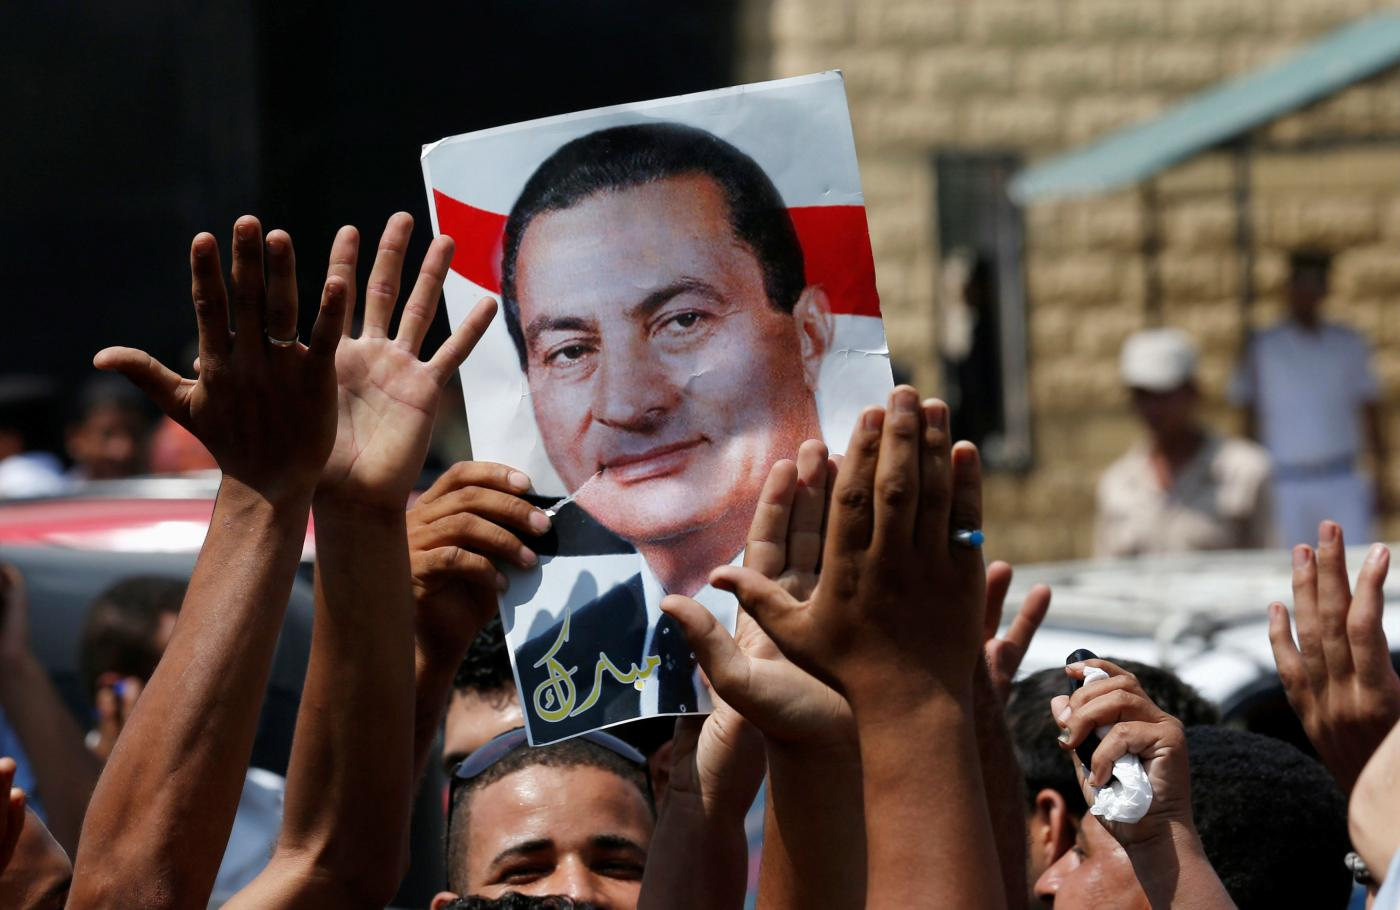 'End of a Ruthless Dictator': Egyptians Mull Mubarak's Legacy